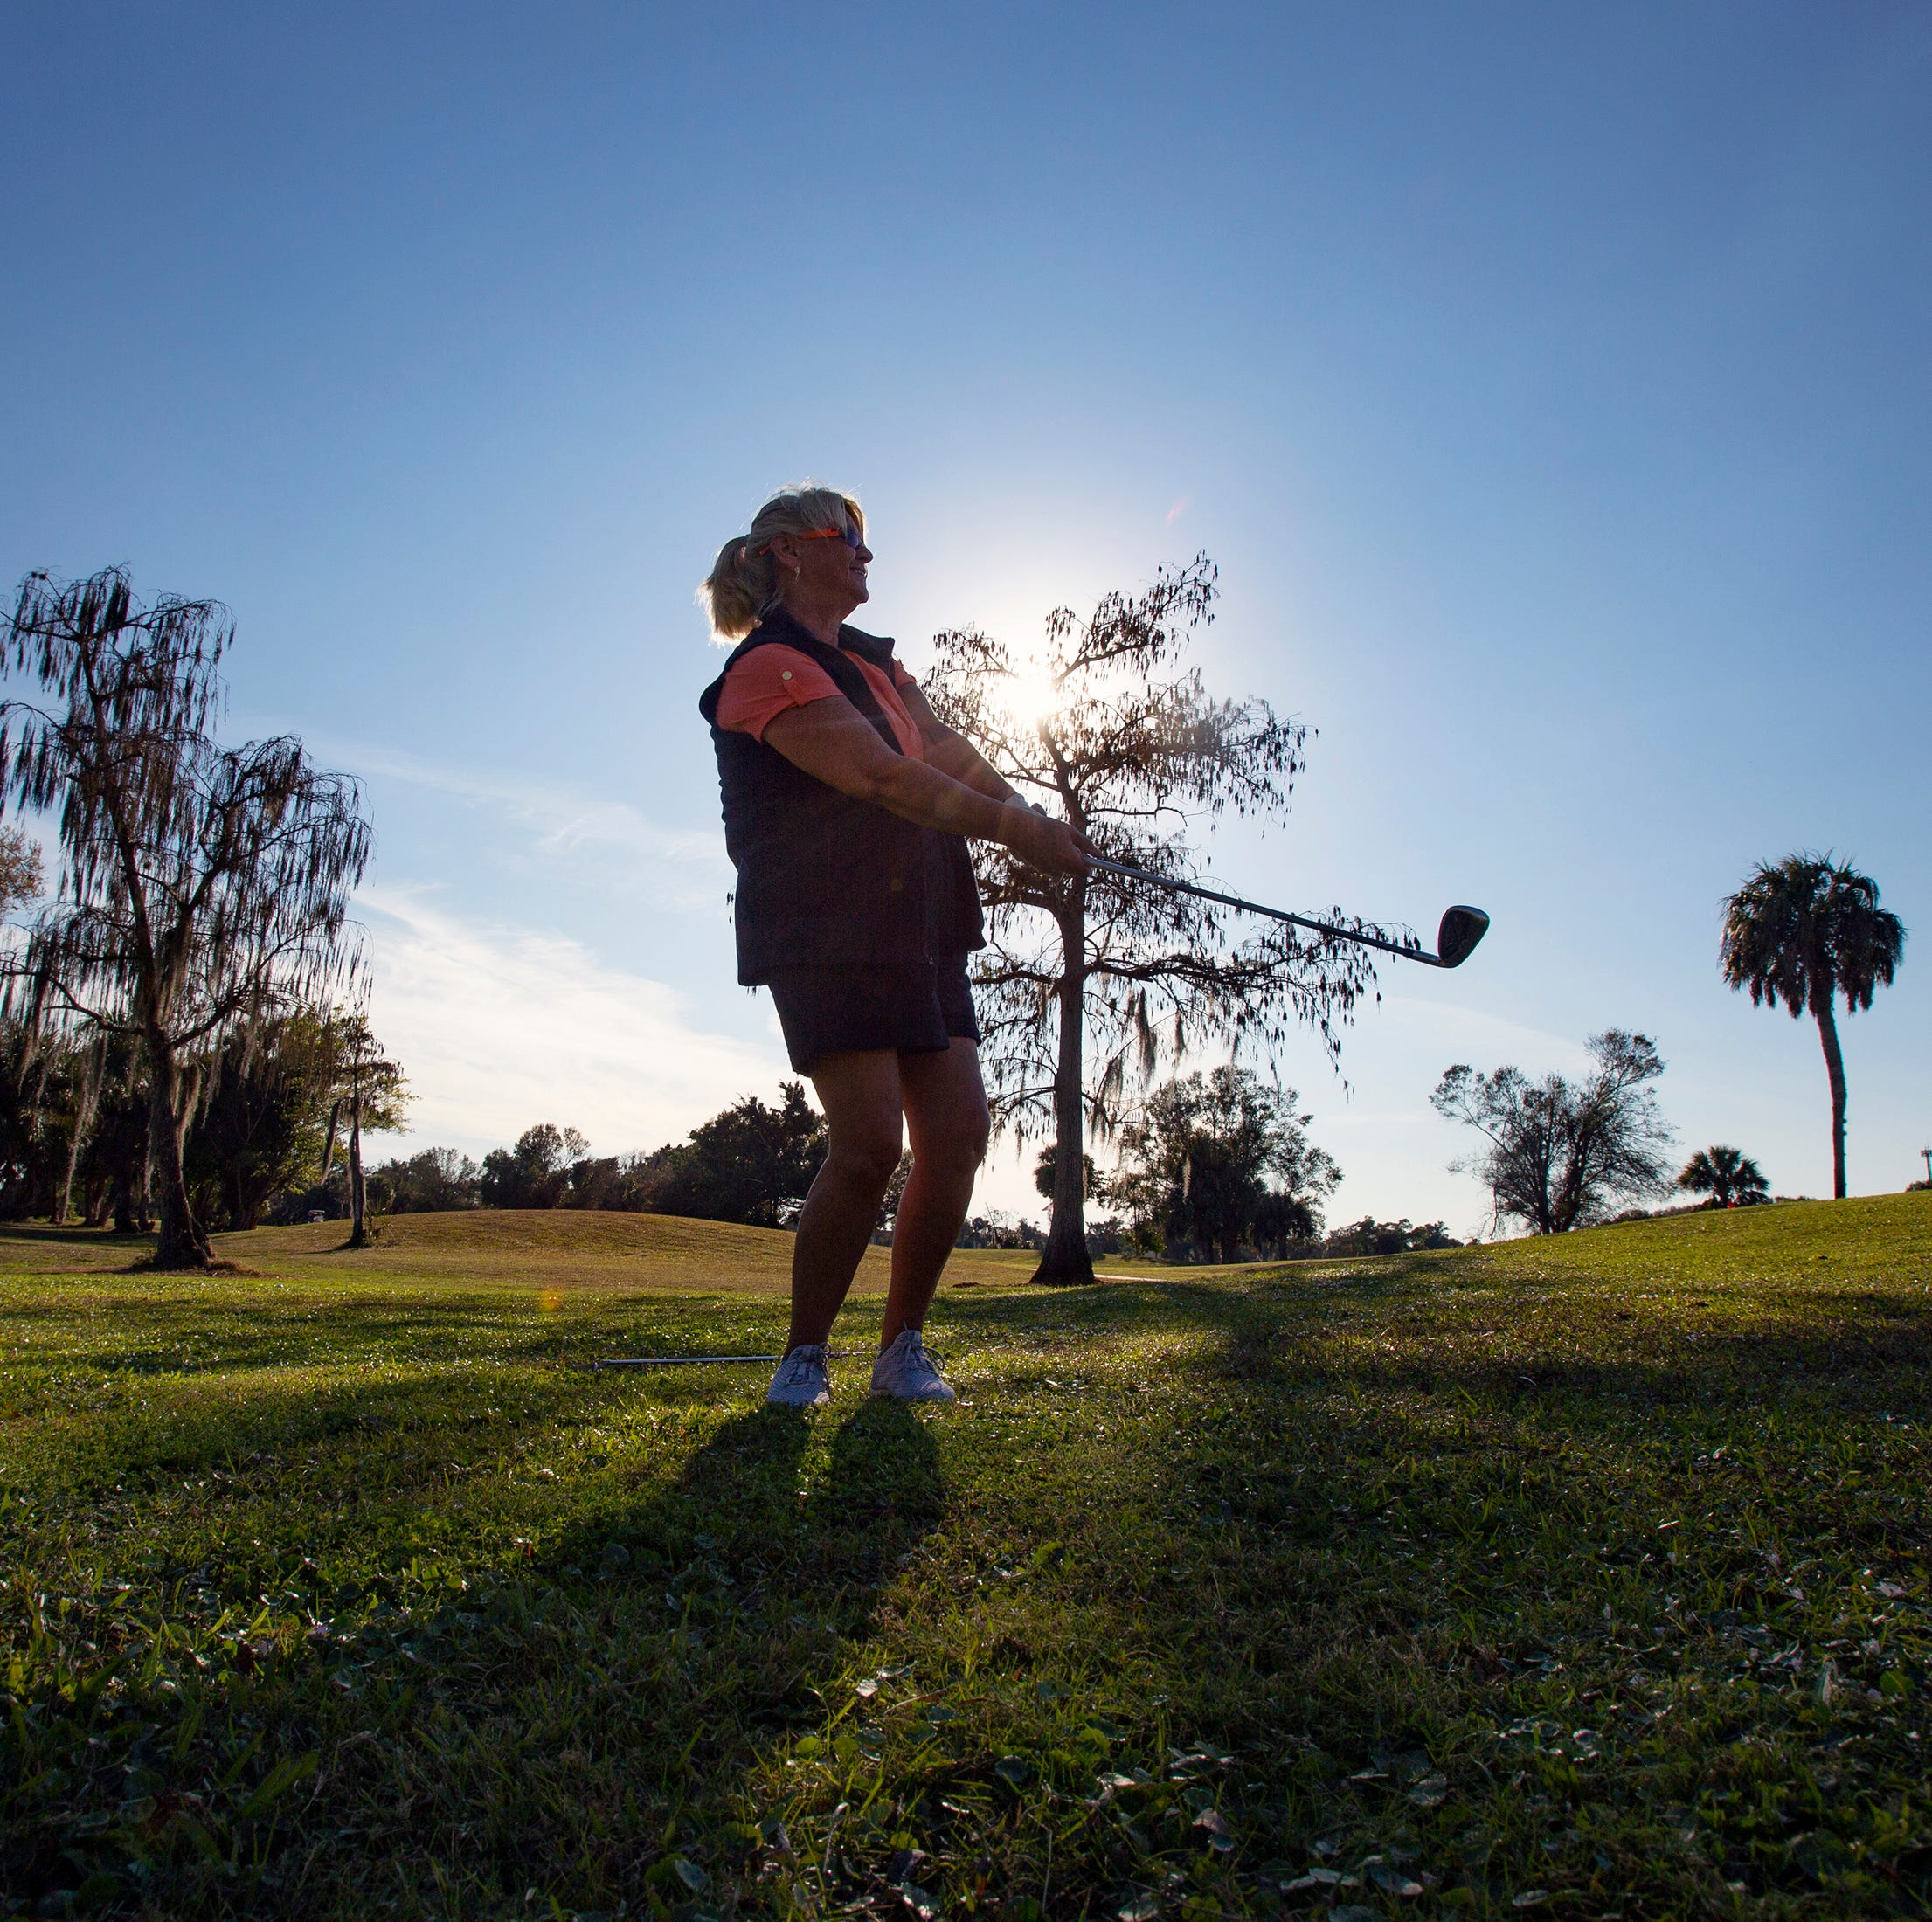 Golden Gate Country Club owners offer 160-acre property to Collier for $28 million